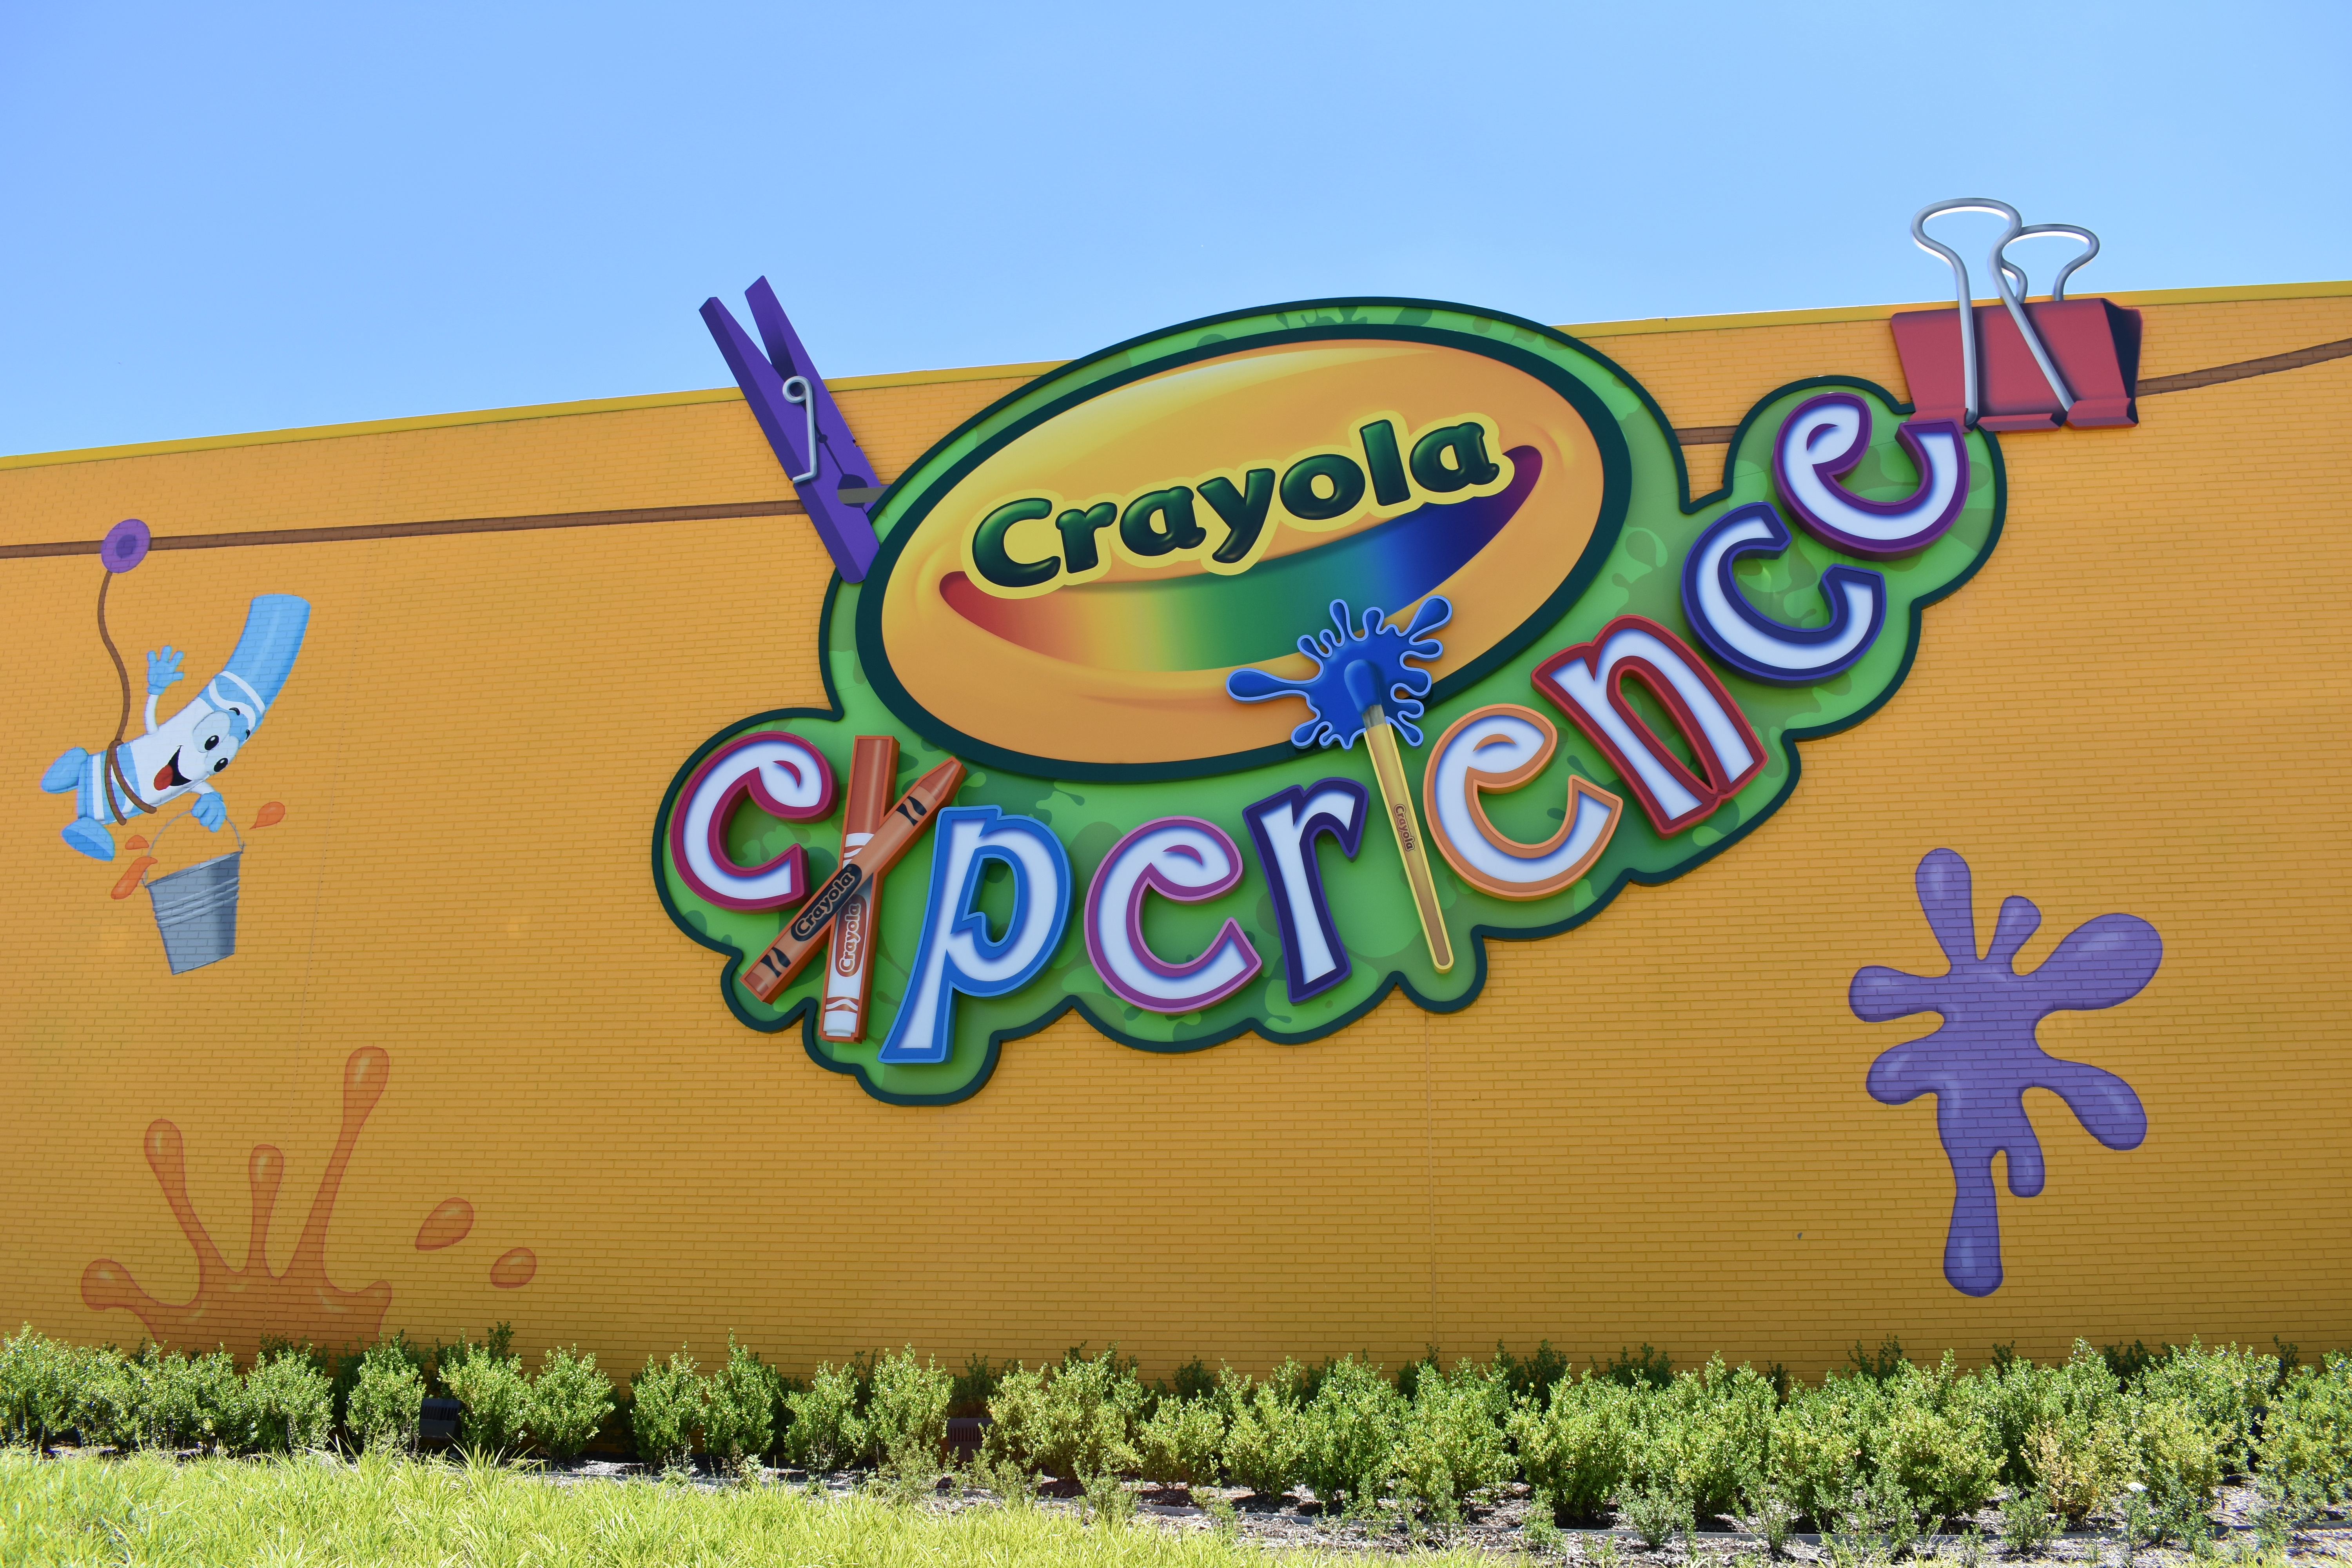 Crayola Experience in Plano